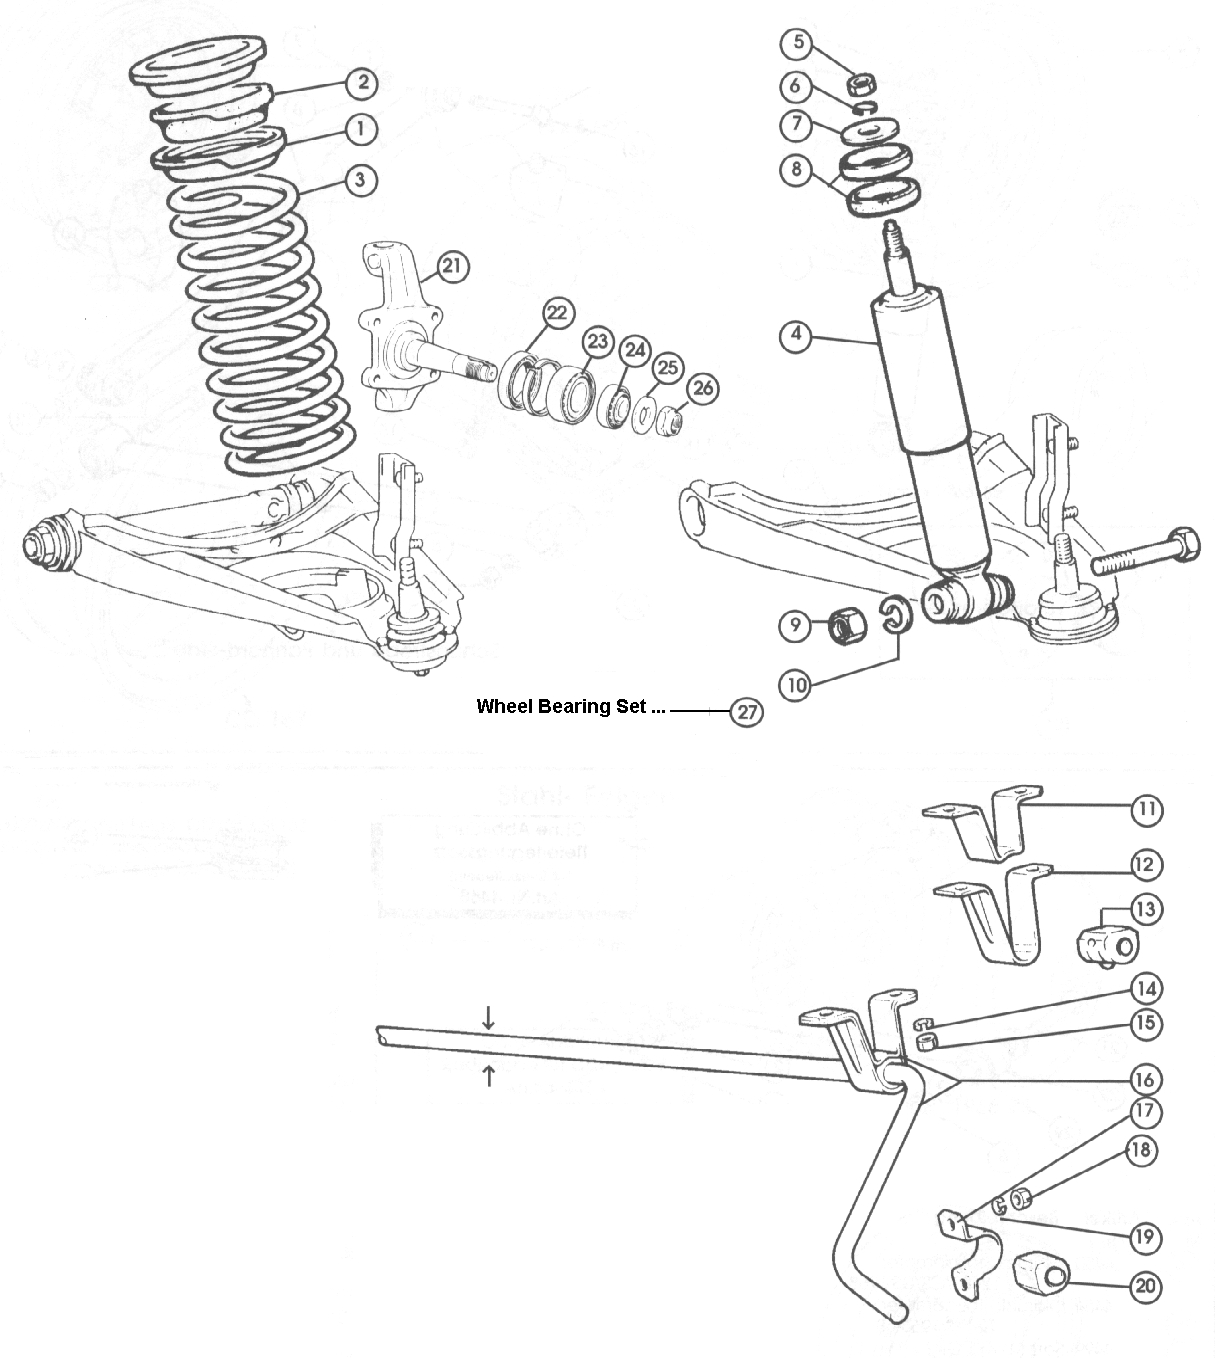 Suspension, Front Suspension – Springs etc.